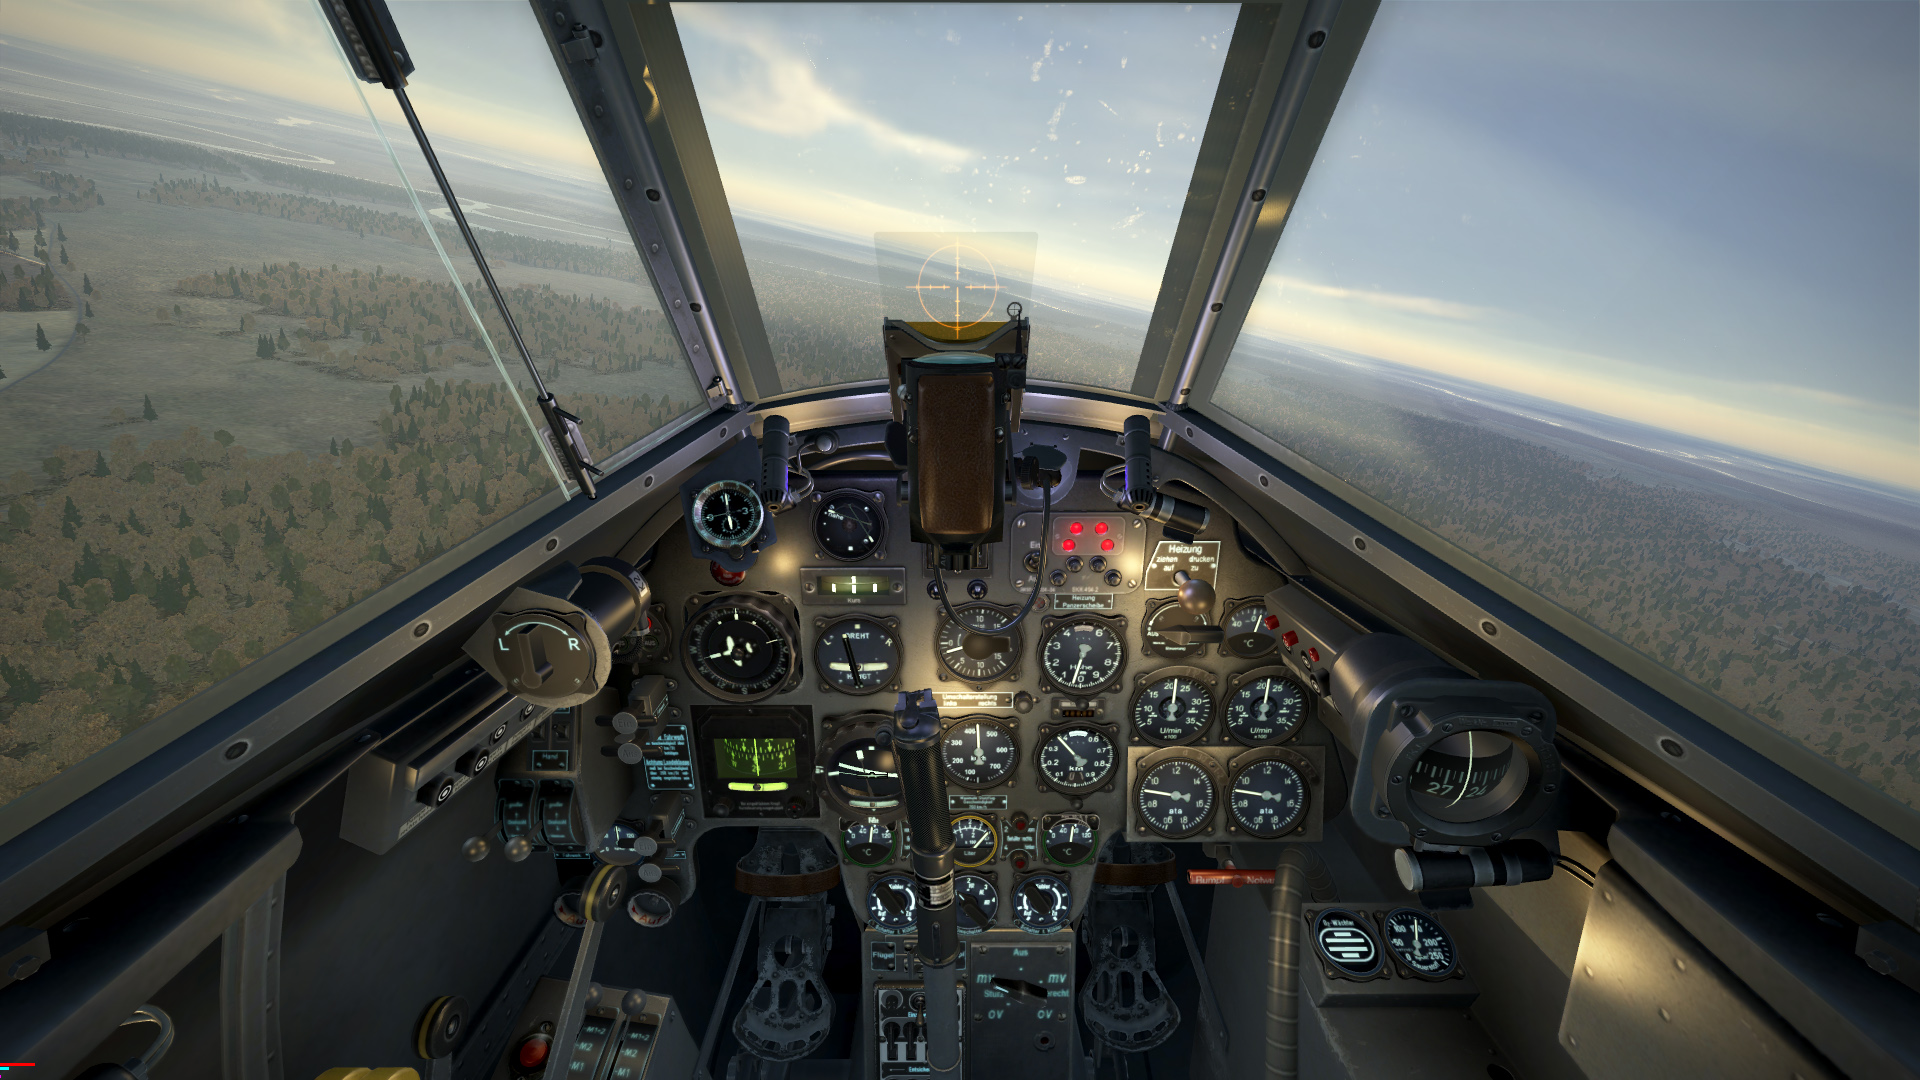 Most realistic looking flight simulator game out there (In terms of